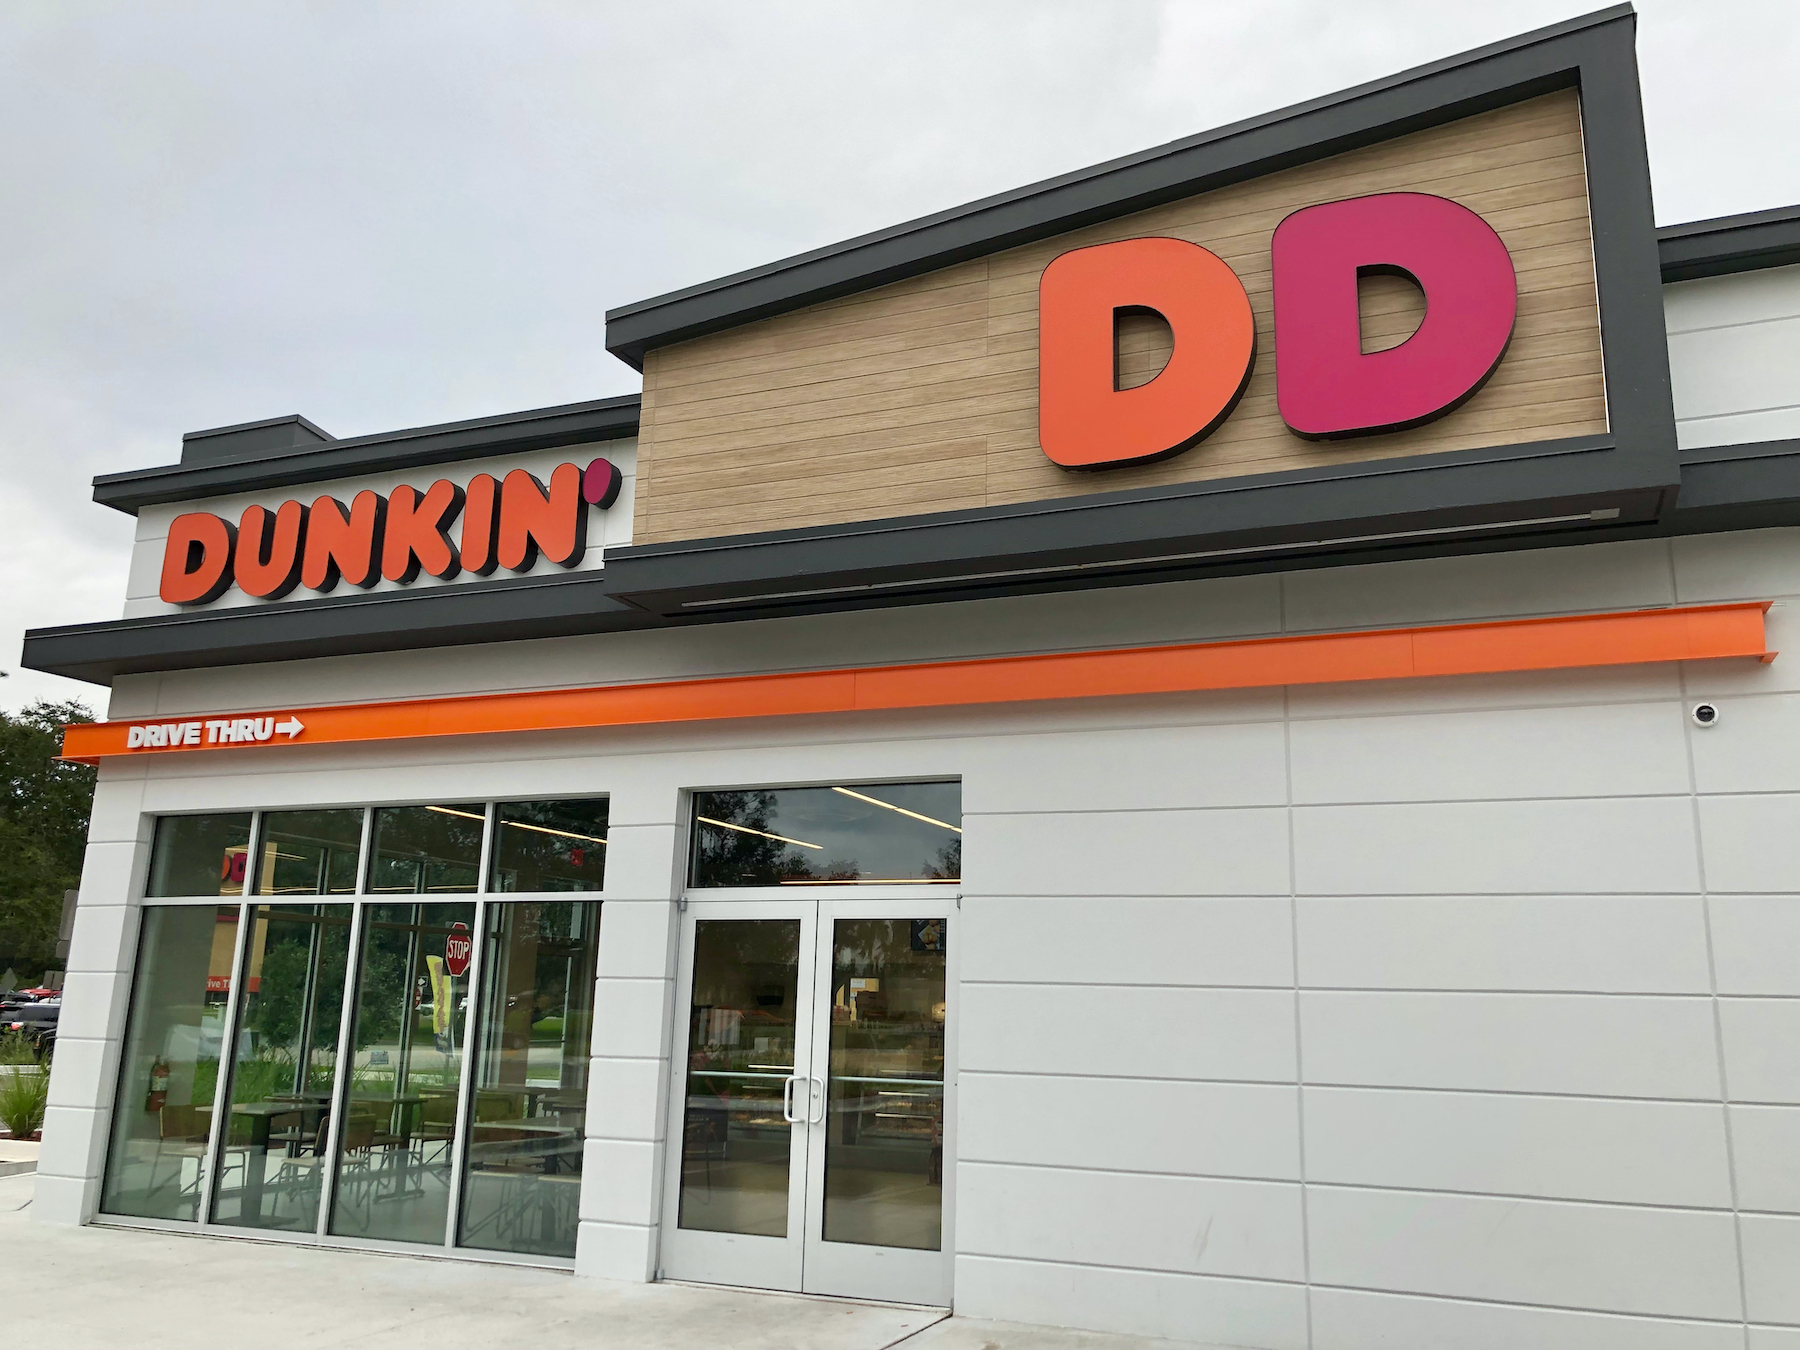 Dunkin franchise, best franchises 2020